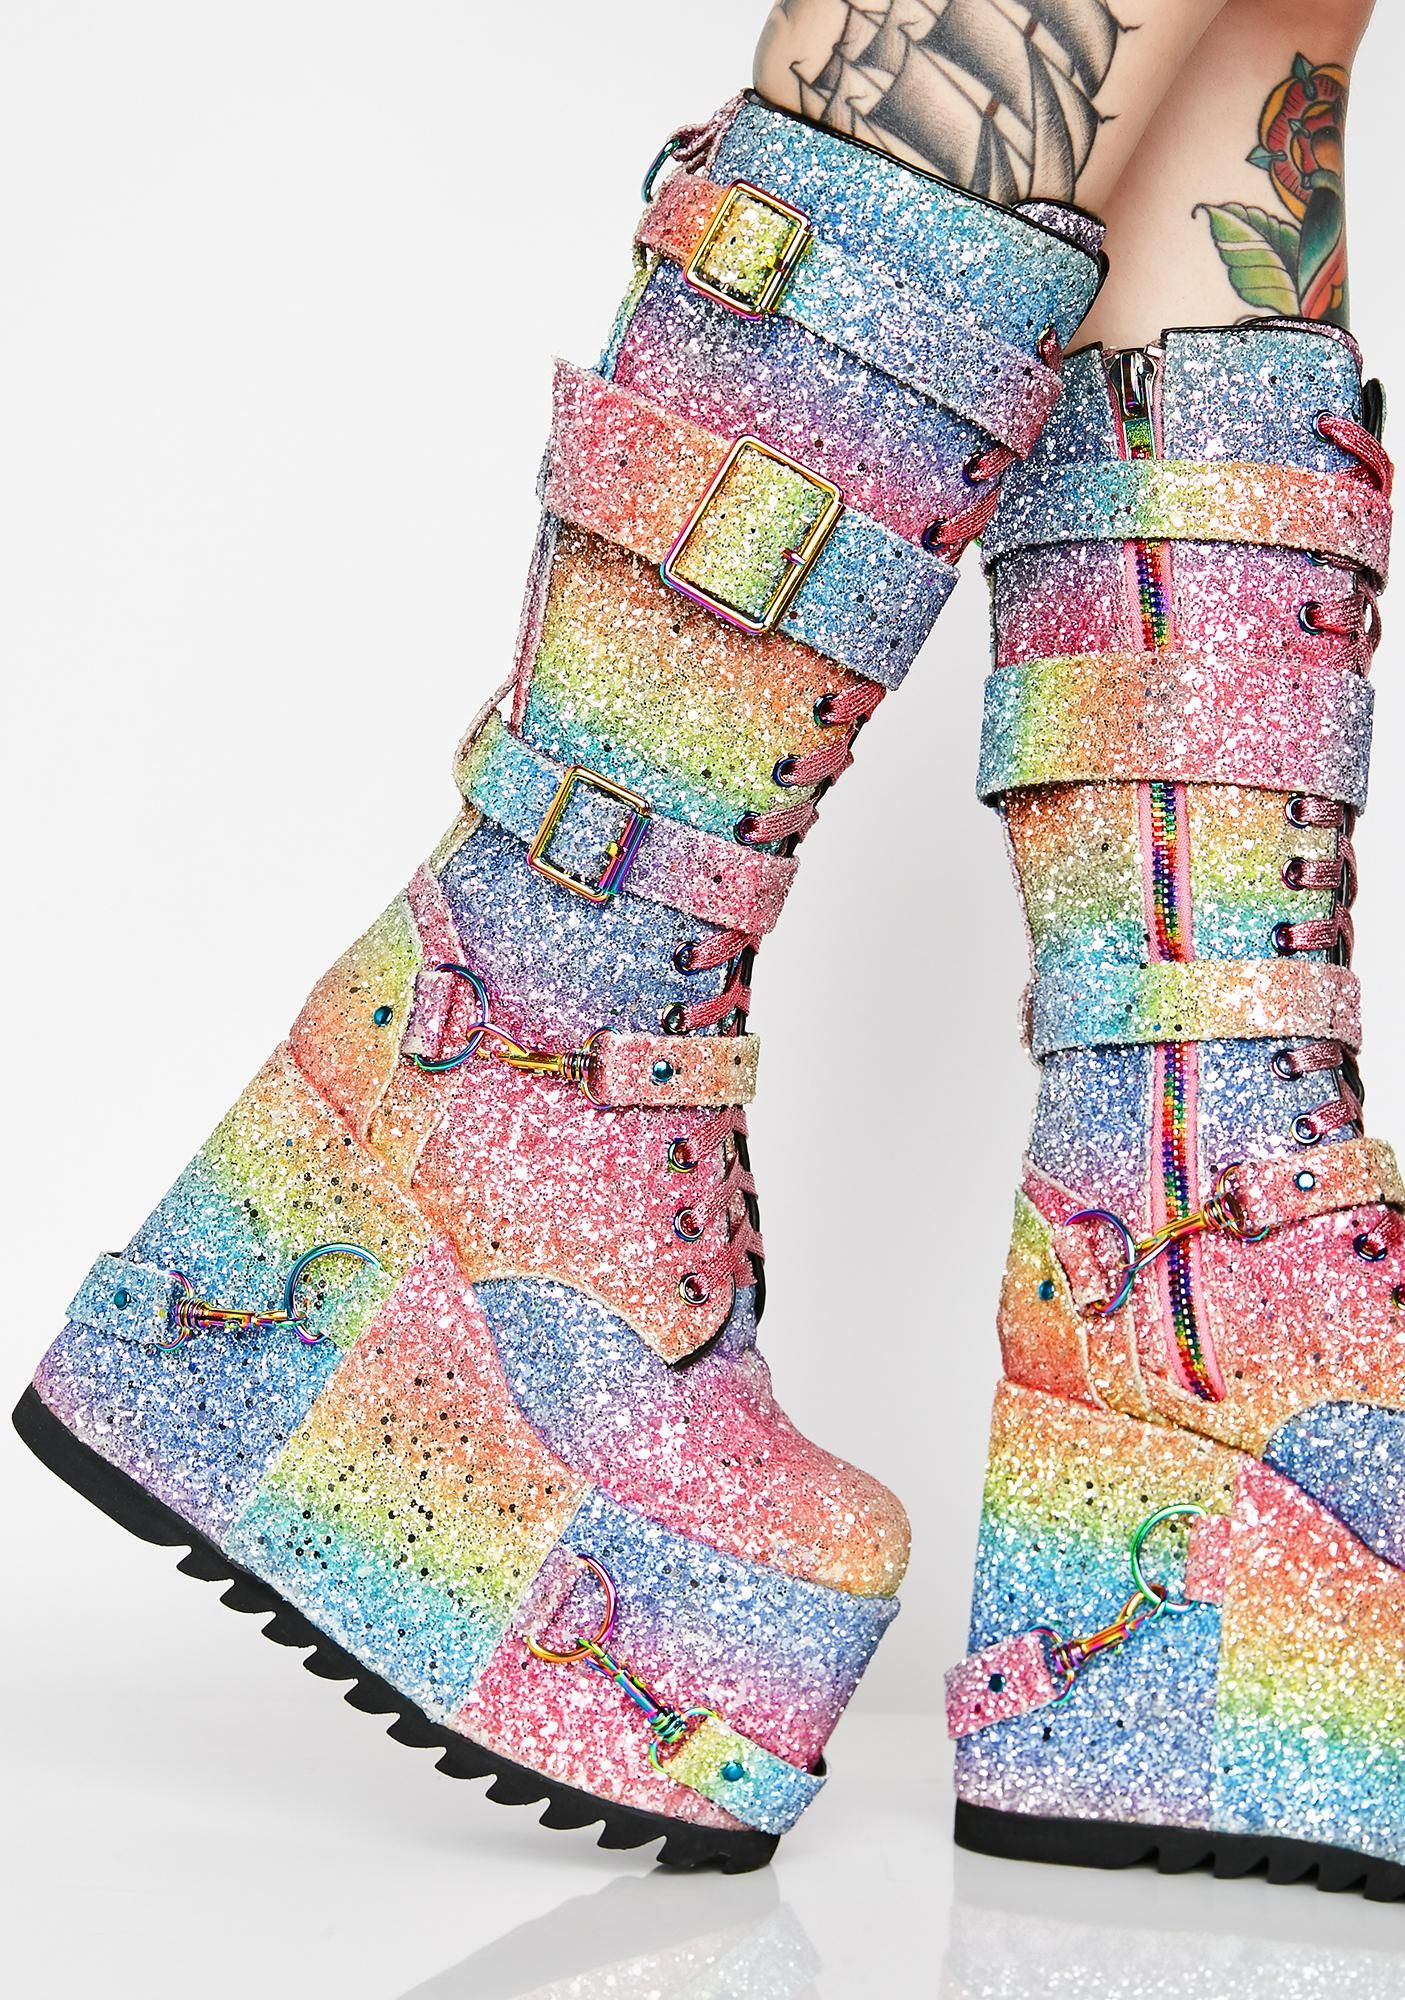 9b3c5d408dc Club Exx Sparkle Pony Platform Boots will have ya ridin  sky high on  magical bae bliss! Get to twerk in these glittery dream lace-up boots that  have rainbow ...